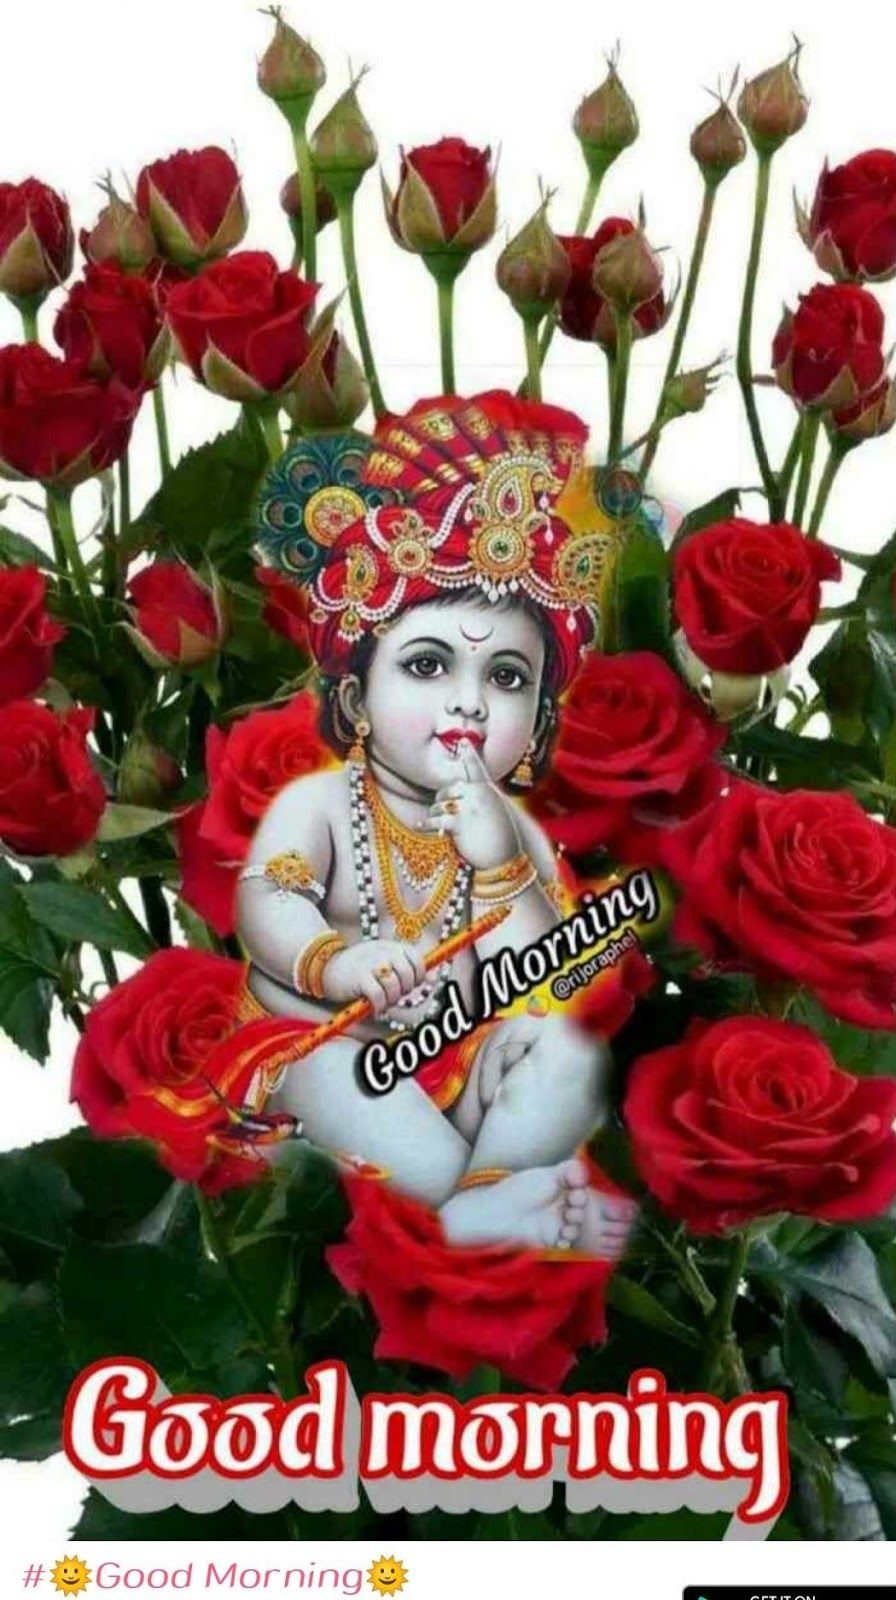 Top 10 Good Morning Happy Krishna Janmashtami Wishes Images Greetings Pictures For Whatsapp Bestwishespics 2021